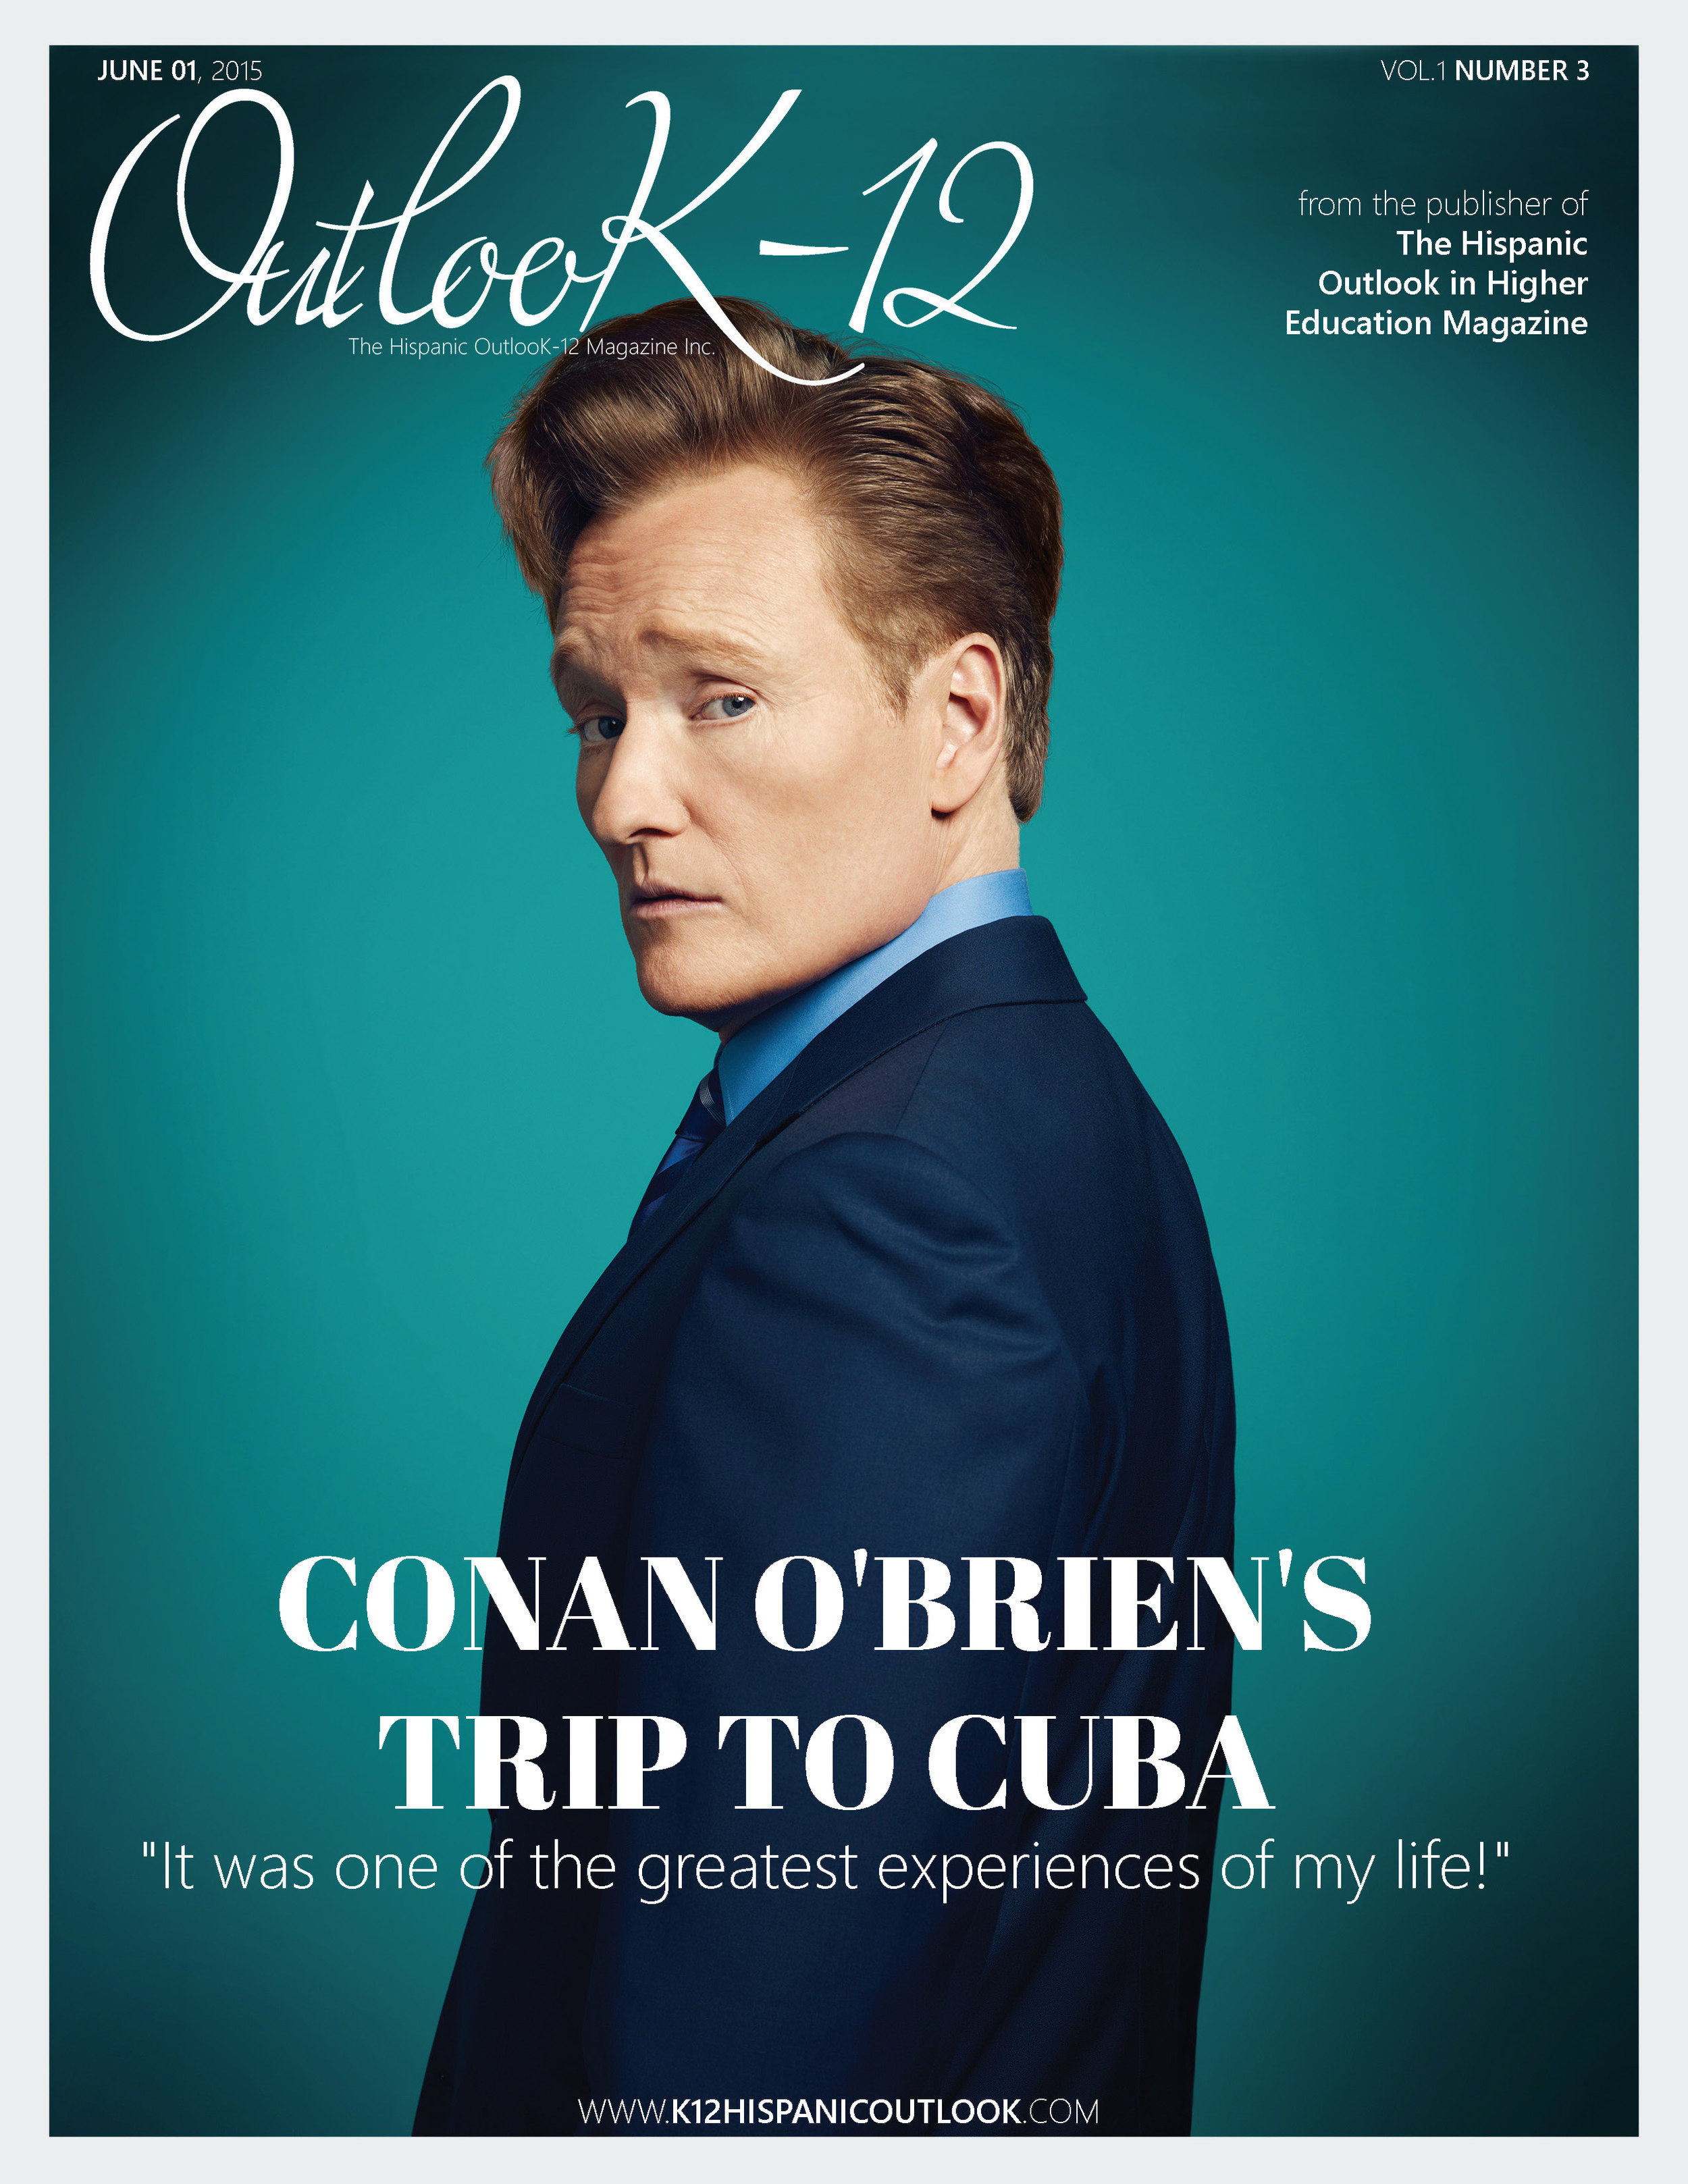 Connan O'Brien's trip to Cuba